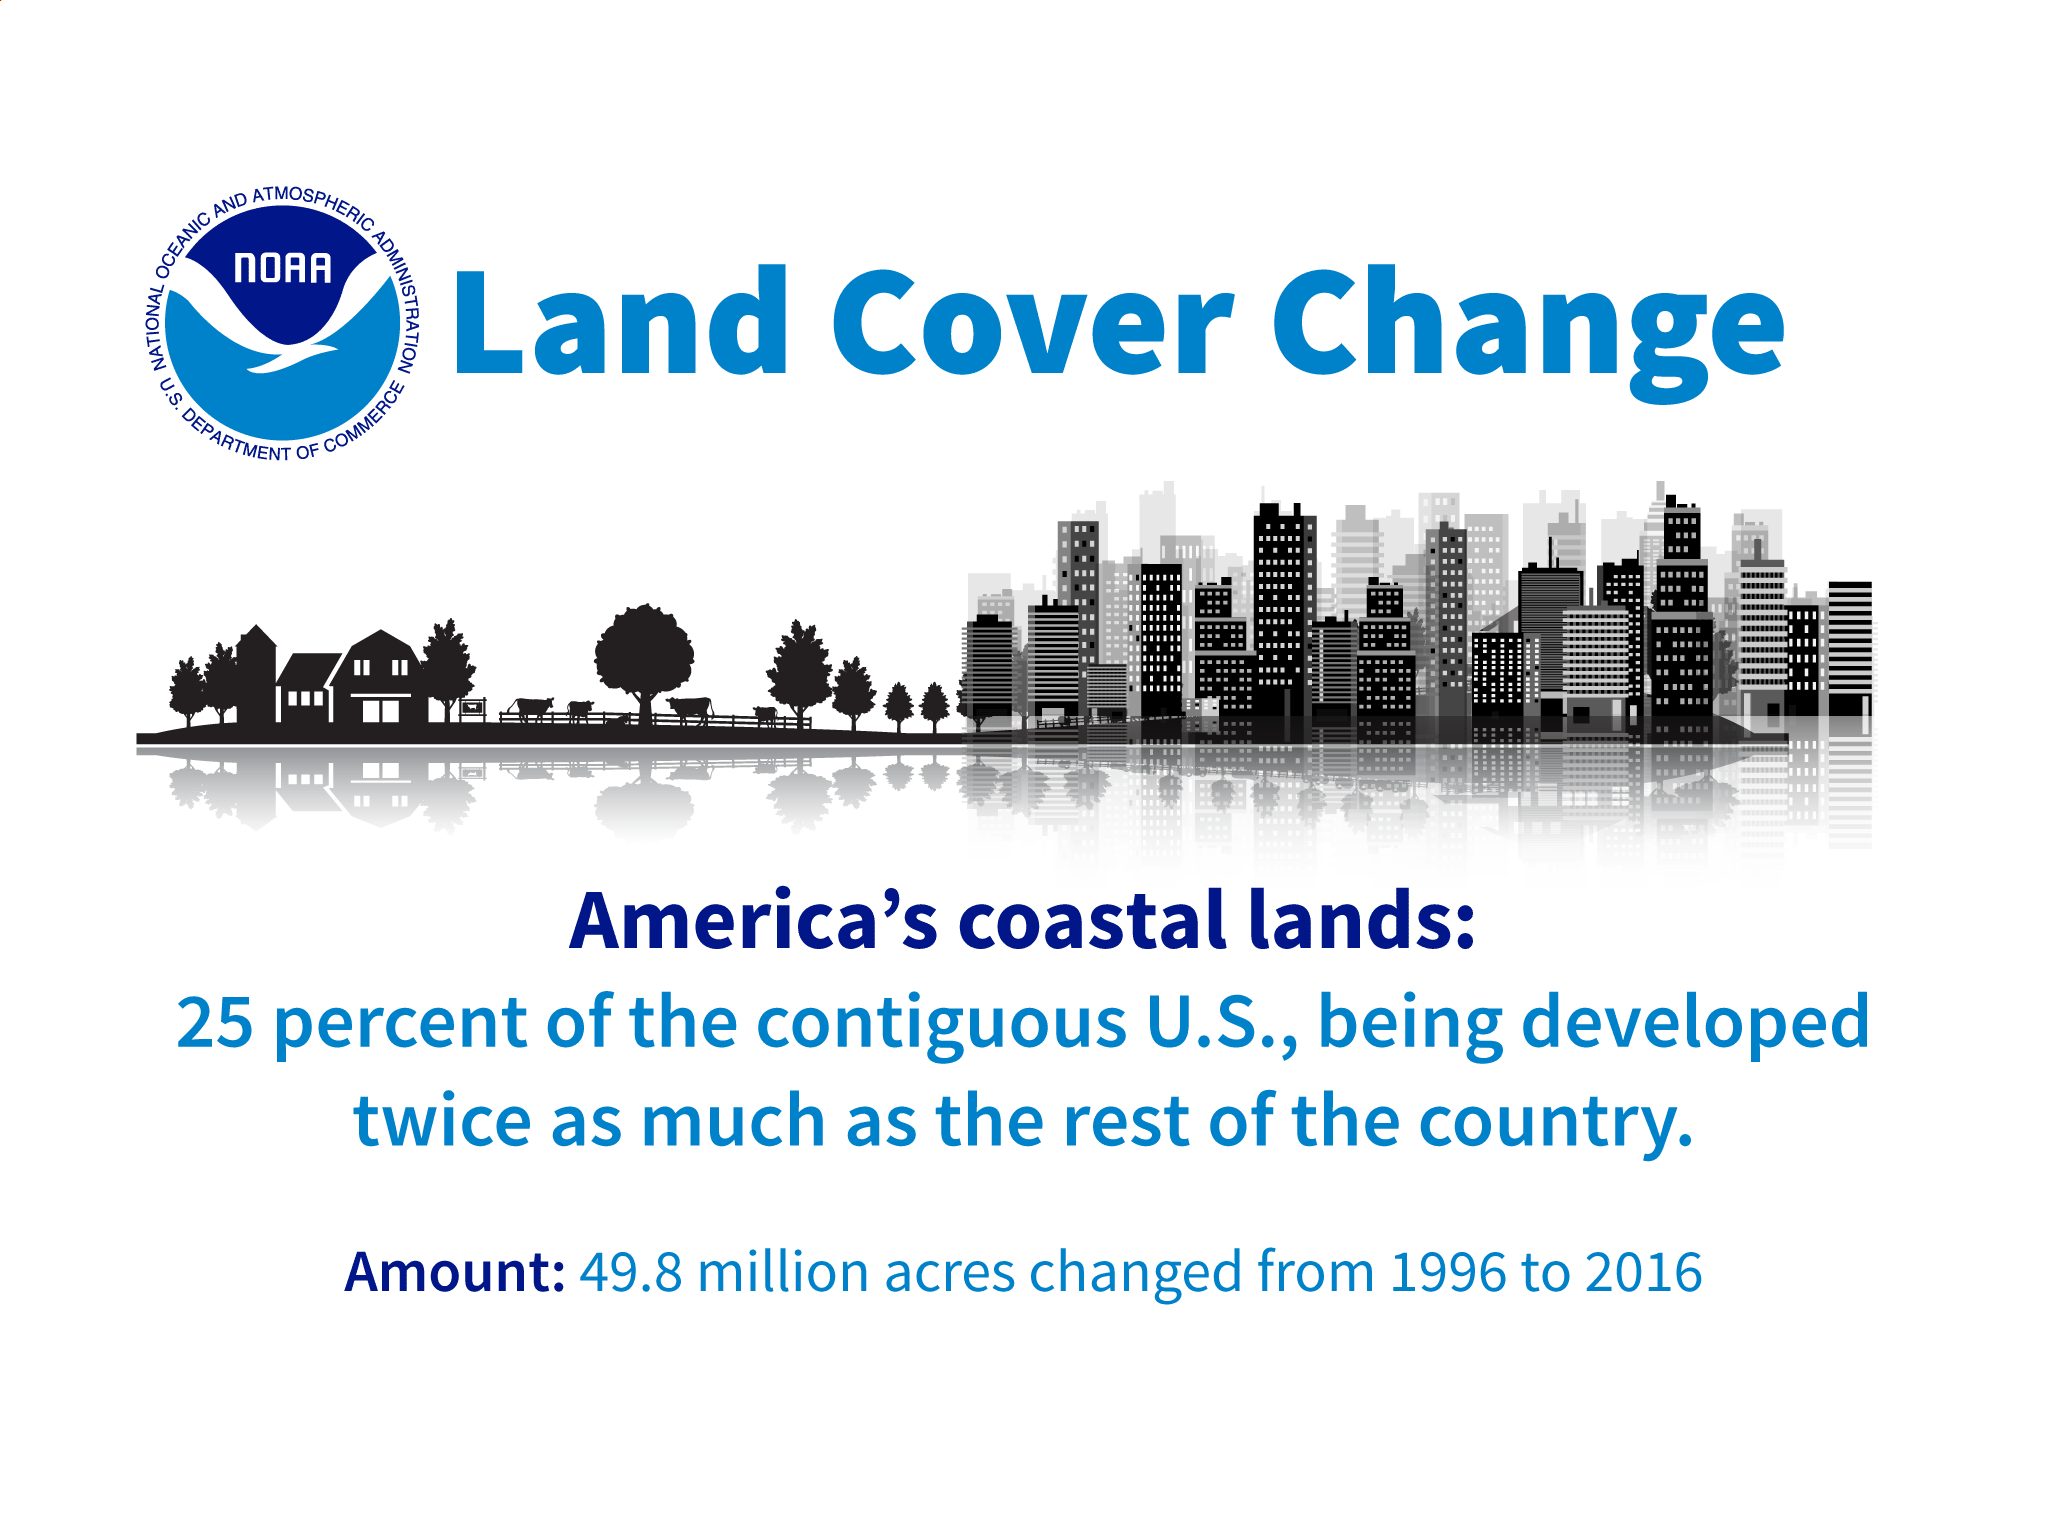 Land cover change graphic stating that coastal land cover changes twice as fast as the rest of the nation.  41.6 million acres from 1996-2010